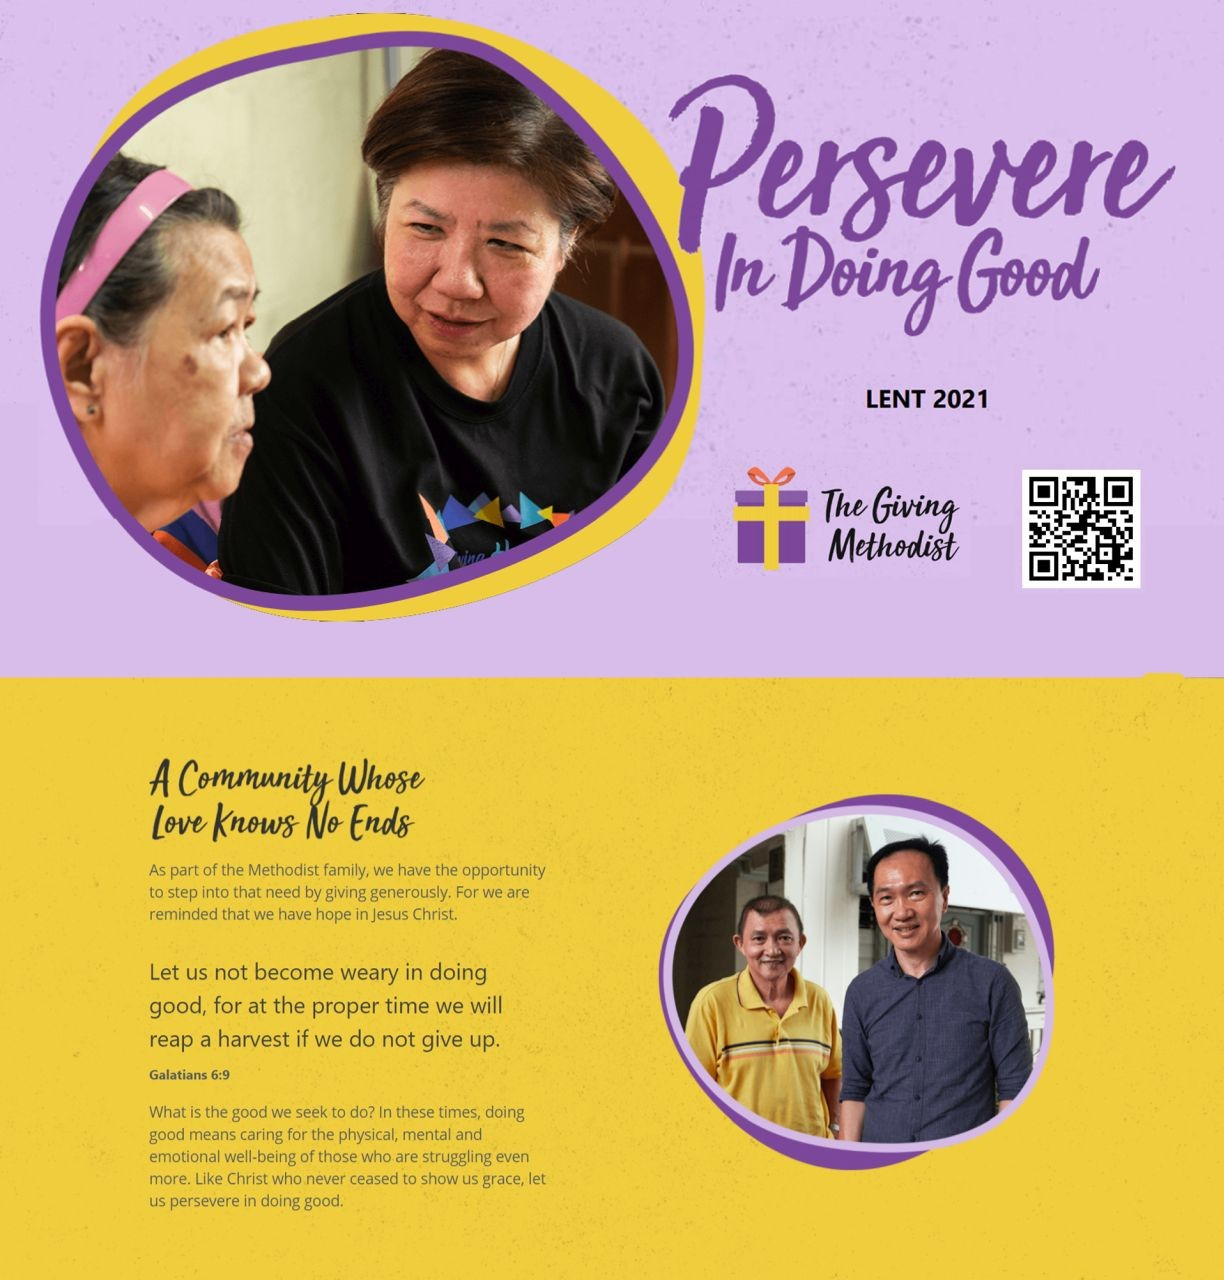 Persevere in Doing Good (The Giving Methodist)